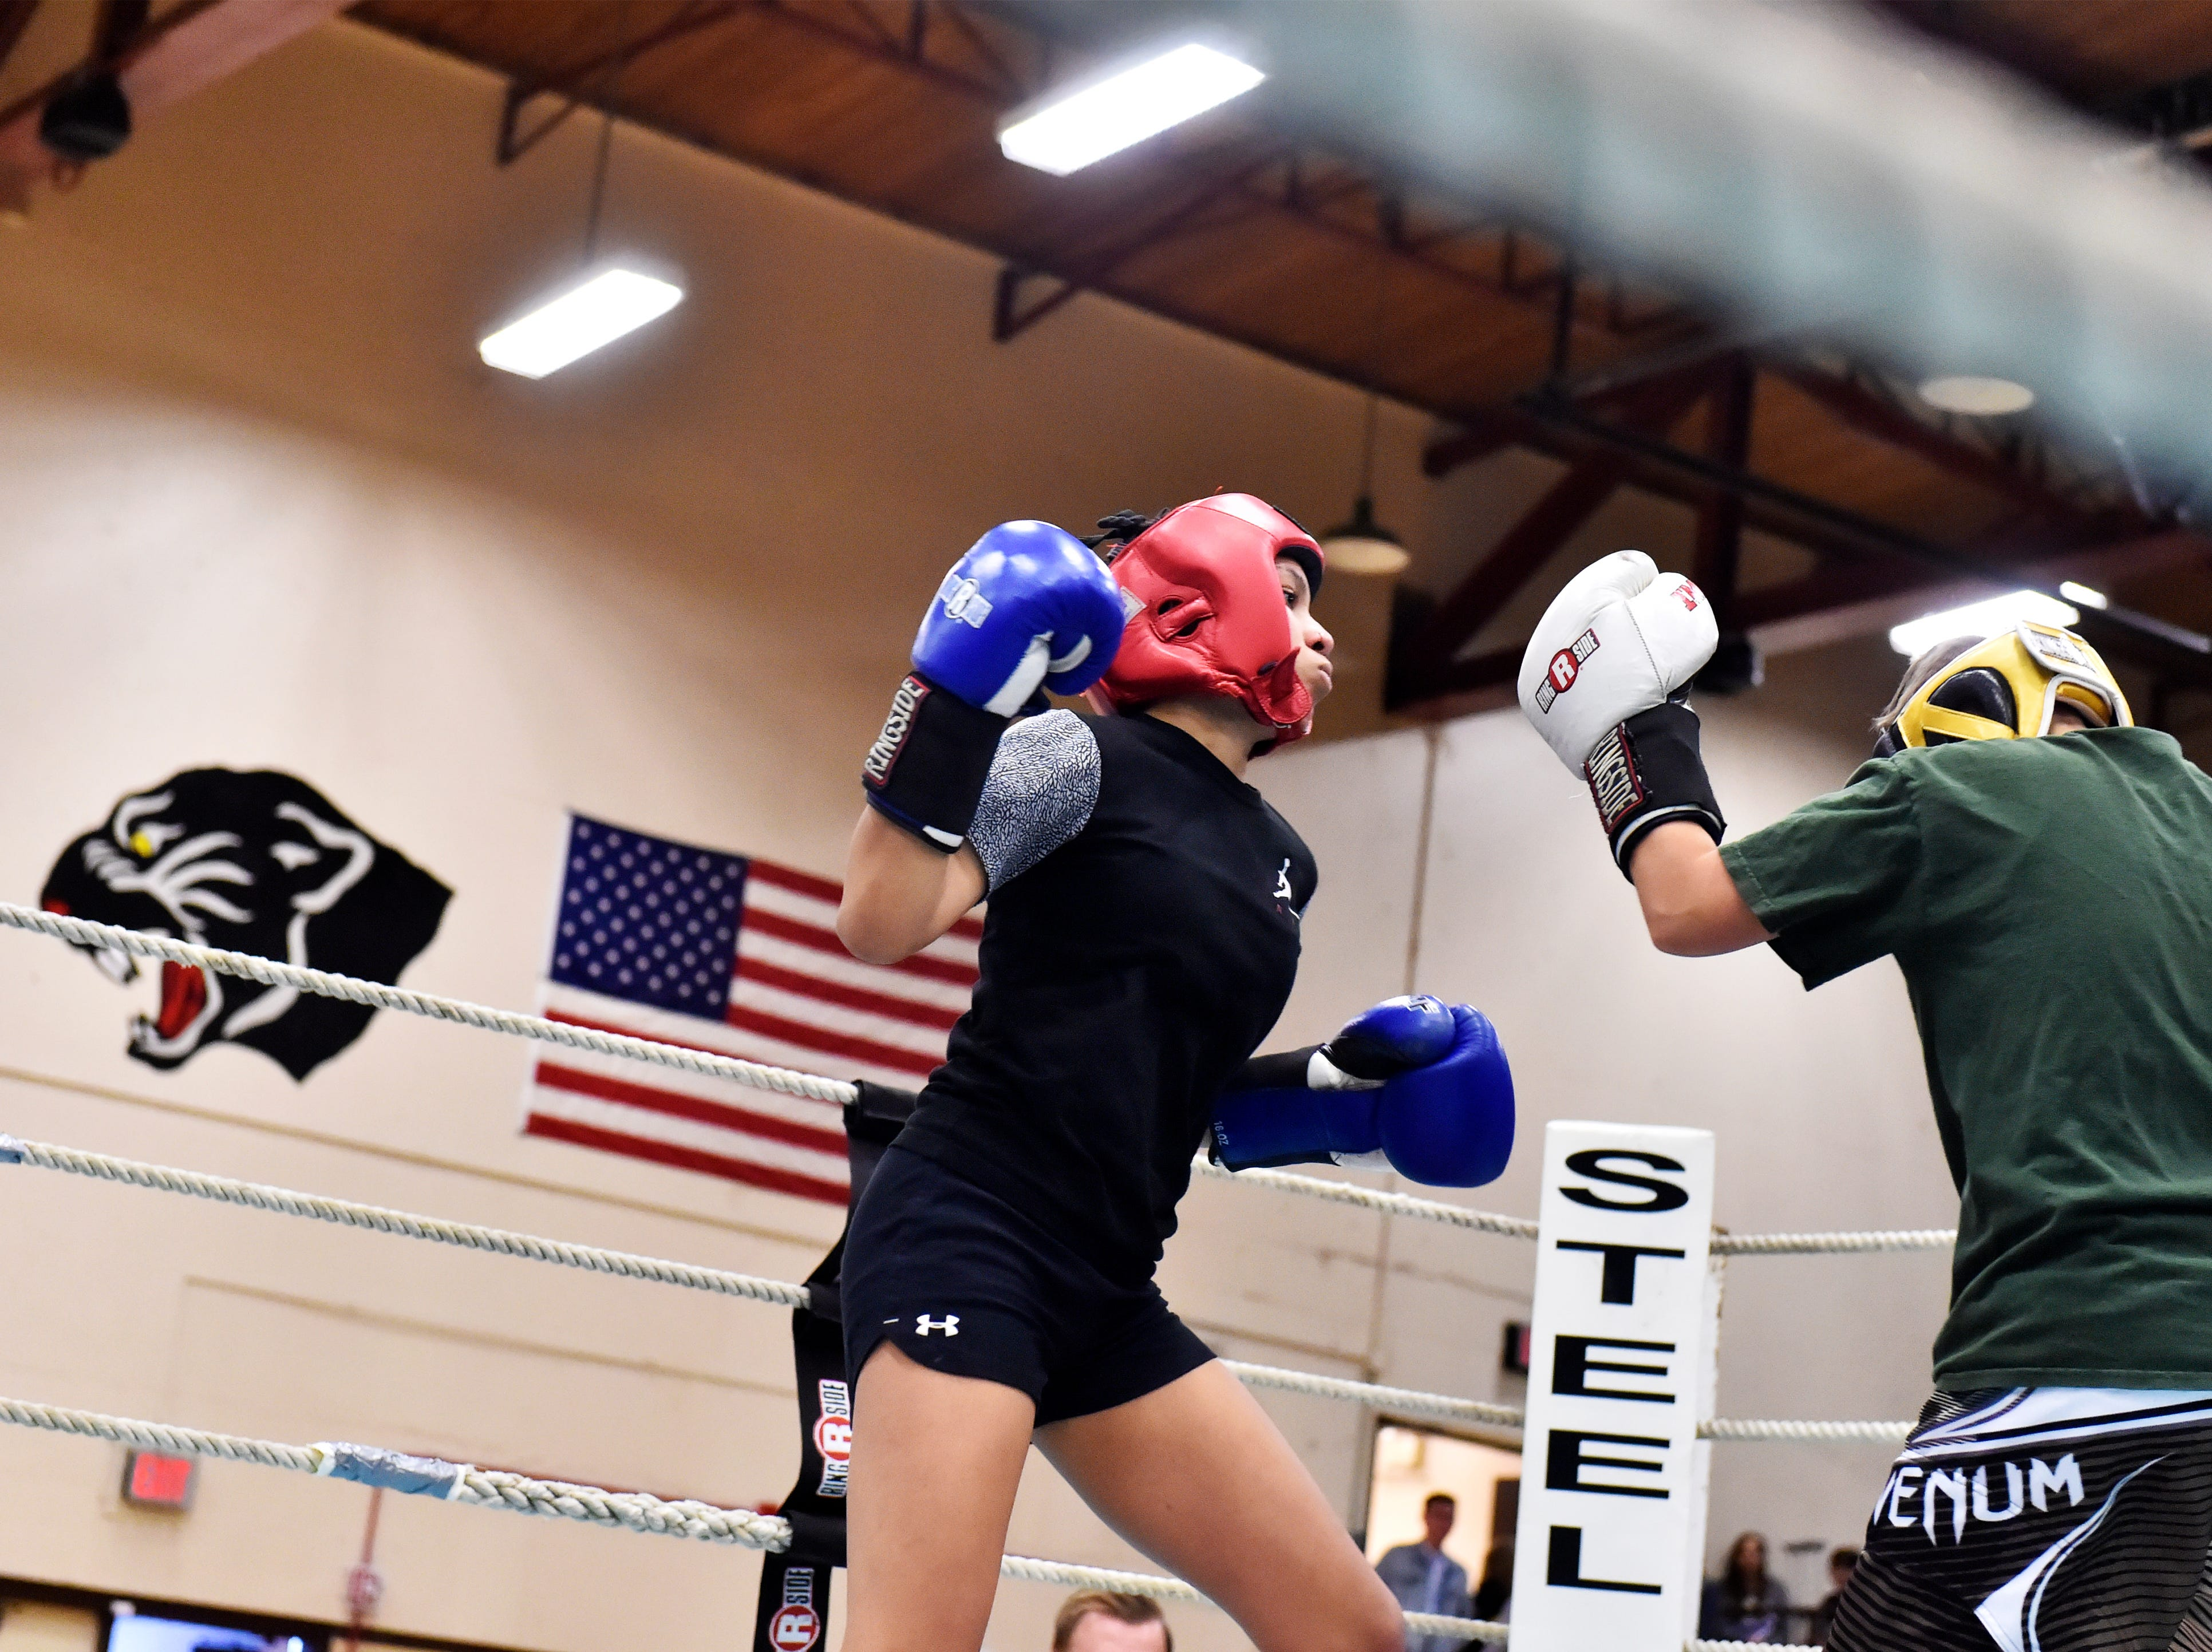 Fighters from Great Falls High and CMR battle it out in the 2019 Crosstown Rumble, Friday night at Paris Gibson Education Center.